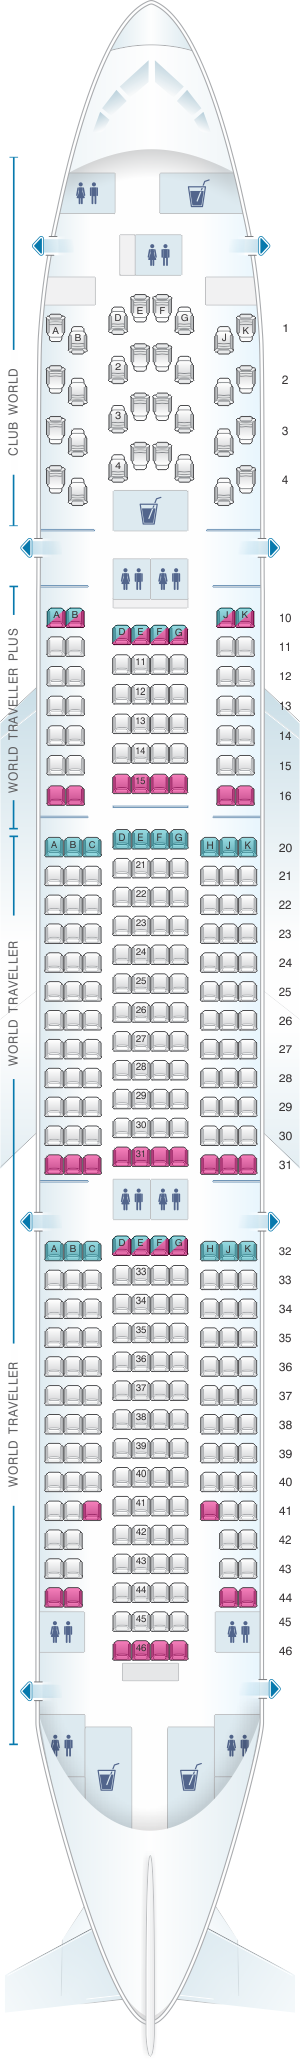 Seat map for British Airways Boeing B777 200 LGW layout